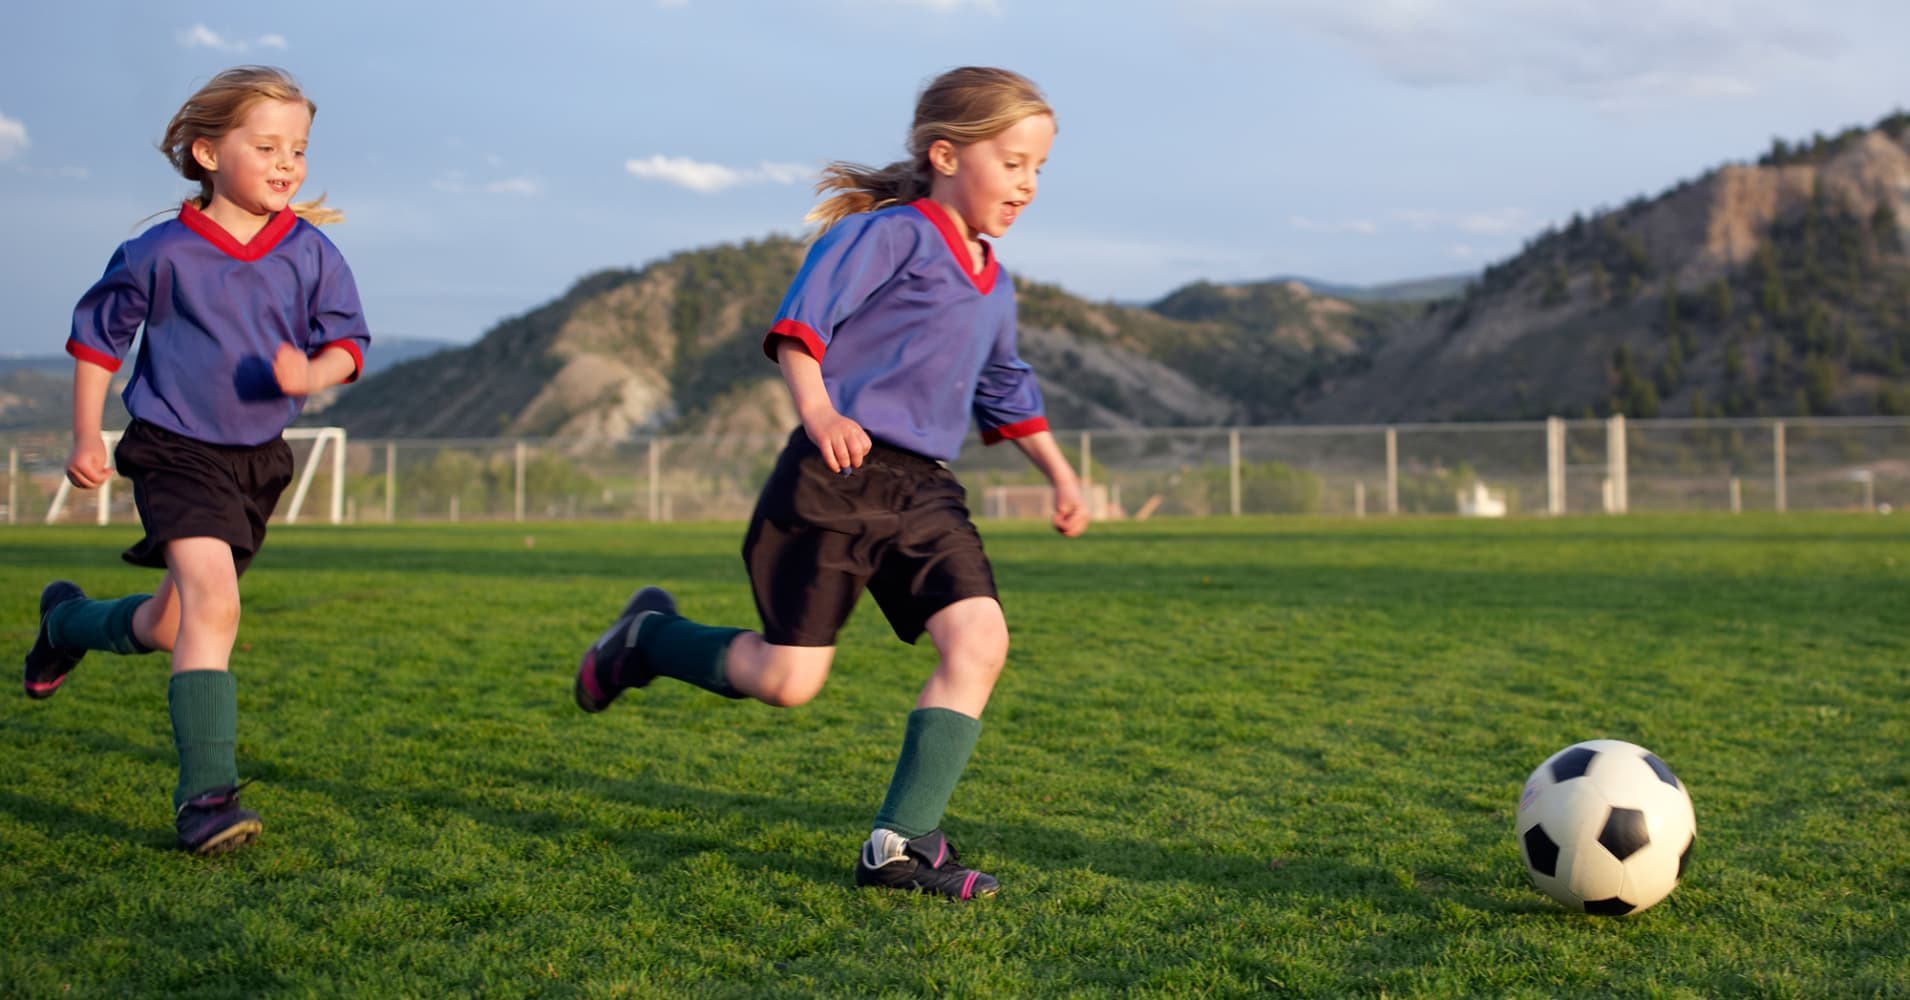 Career Day For Kids Sports: Youth Sports Is A $7 Billion Industry—and Growing